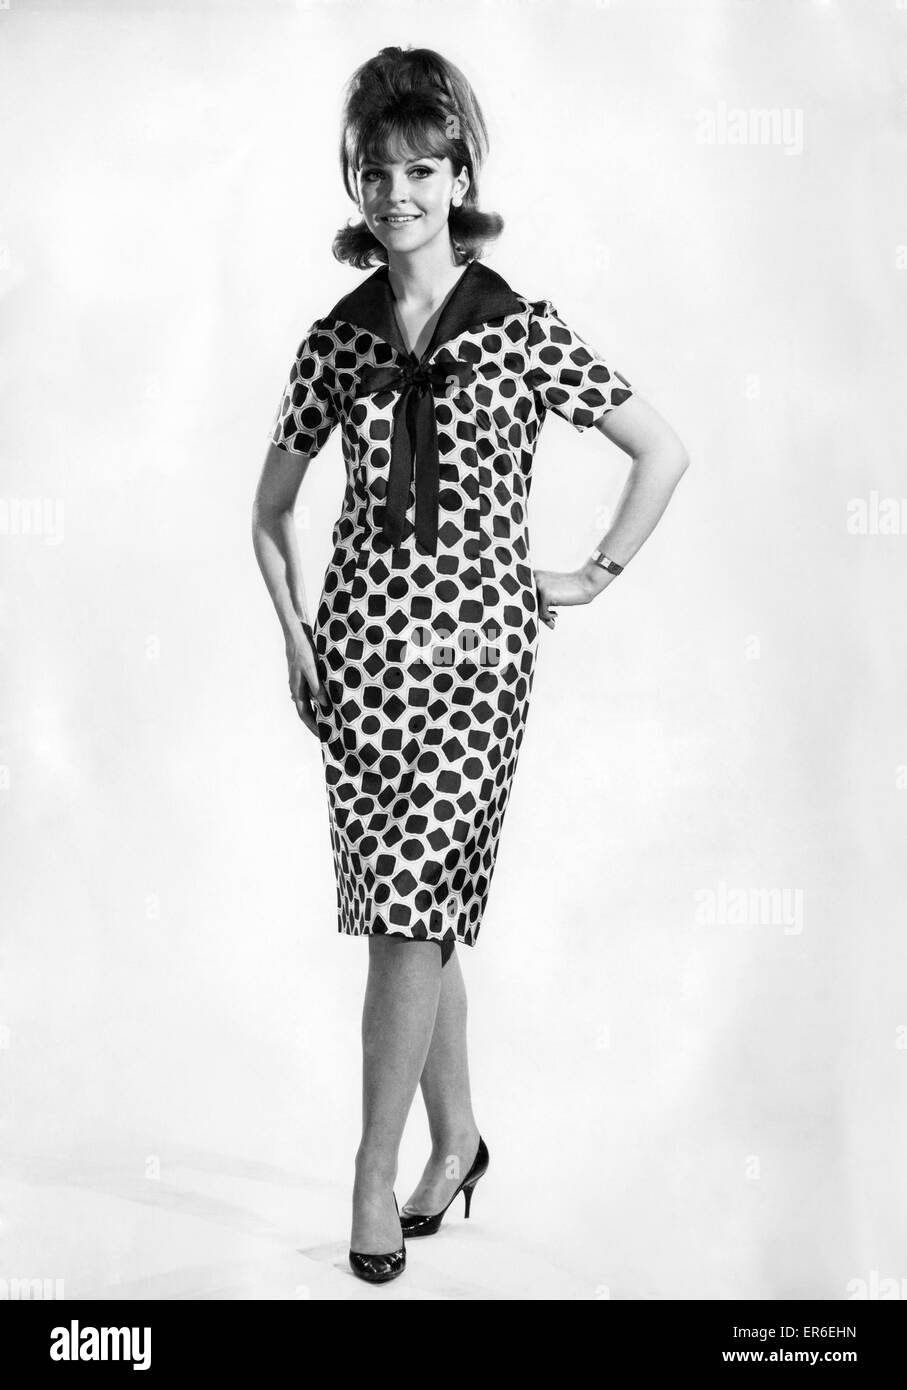 Reveille Fashions: Ann Roberts. May 1964 P006821 - Stock Image